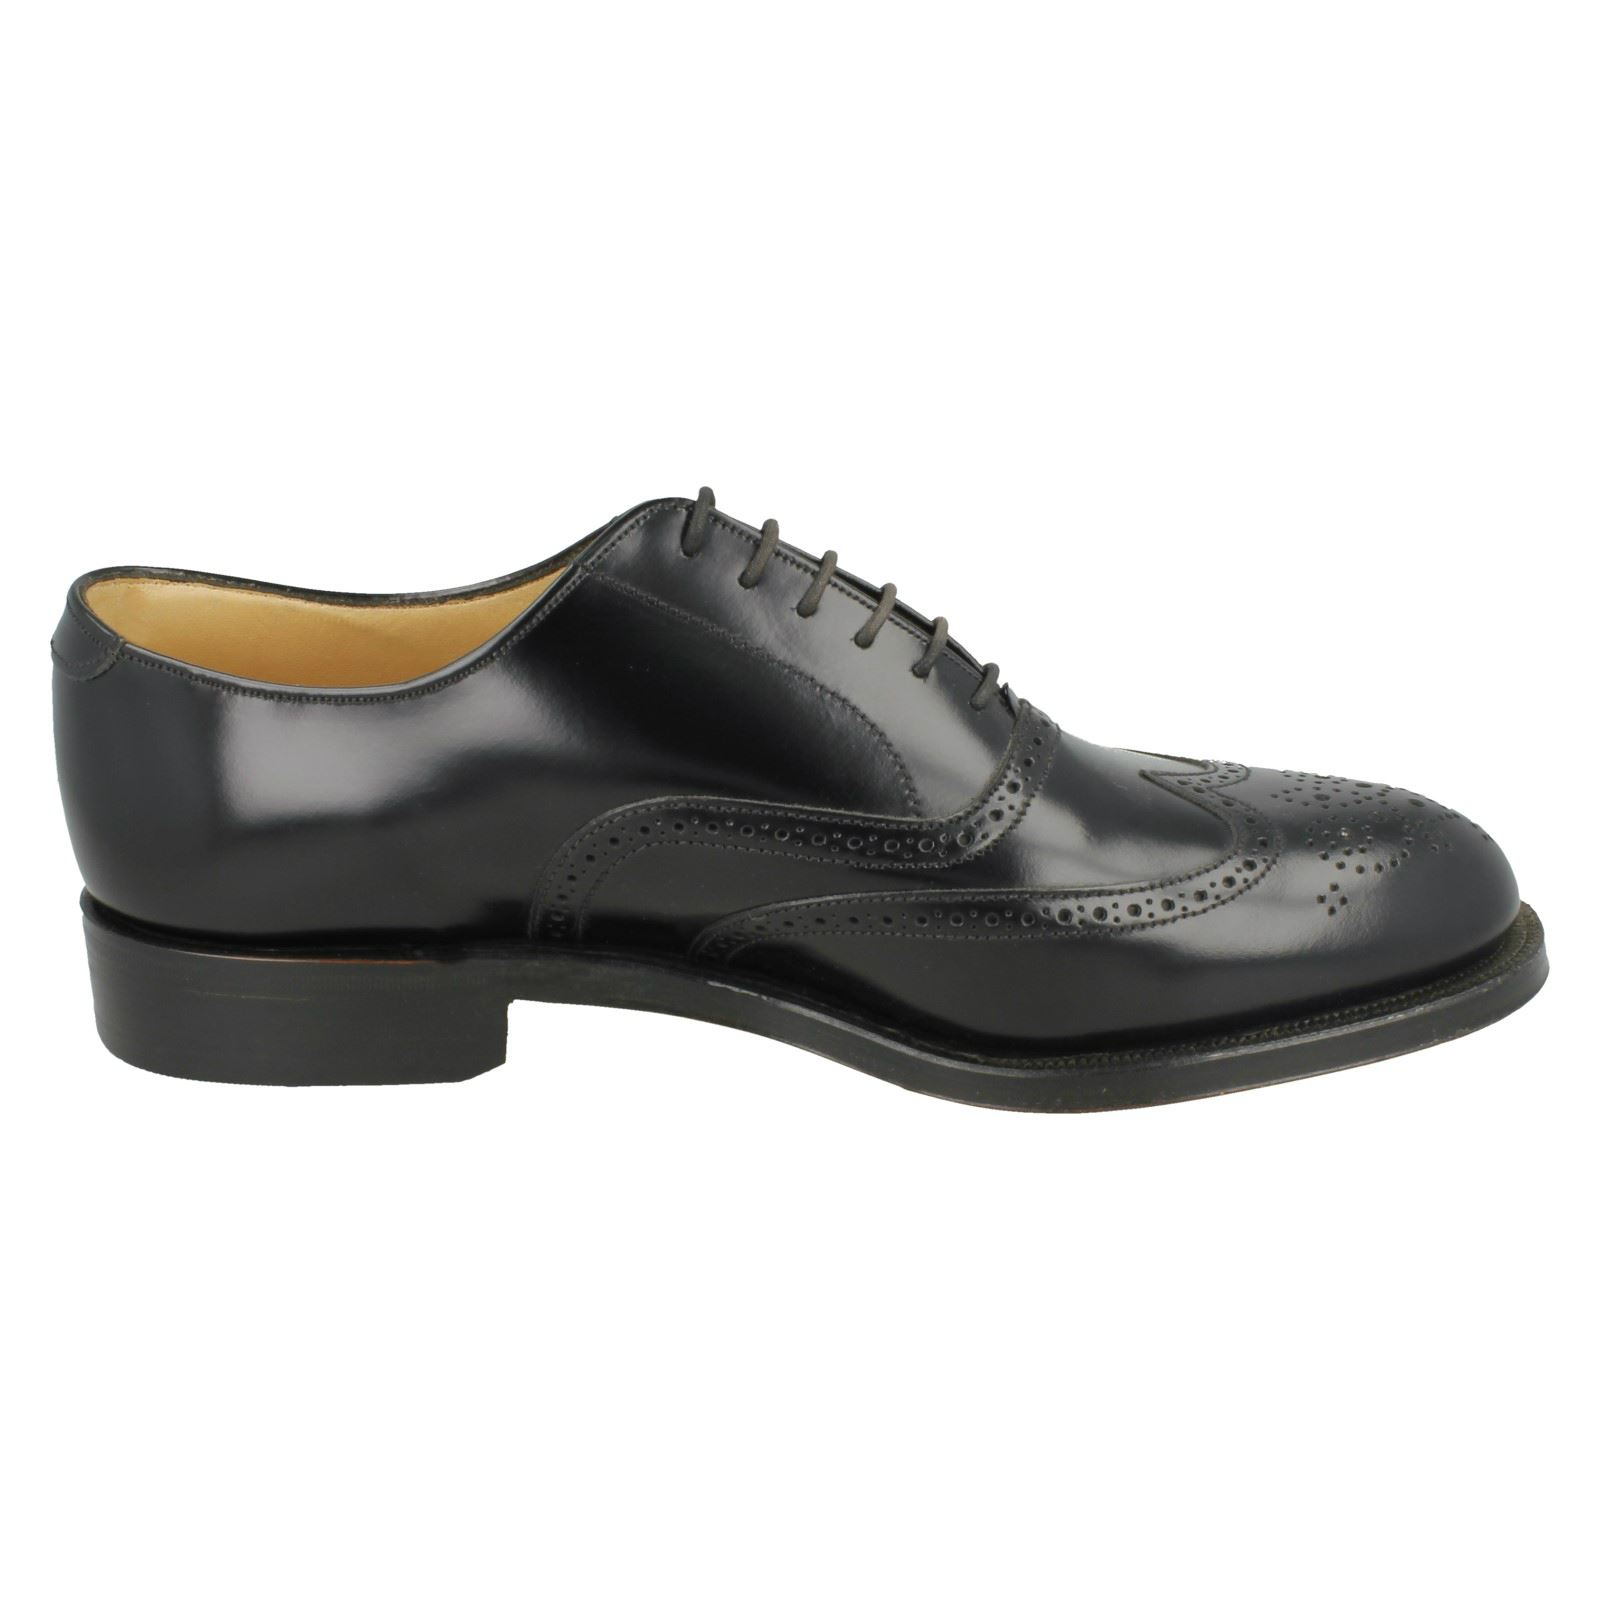 Uomo Grenson Leder Leder Leder Lace Up Fastening Rounded Toe Formal Brogue Schuhes - 'Perth' 971897